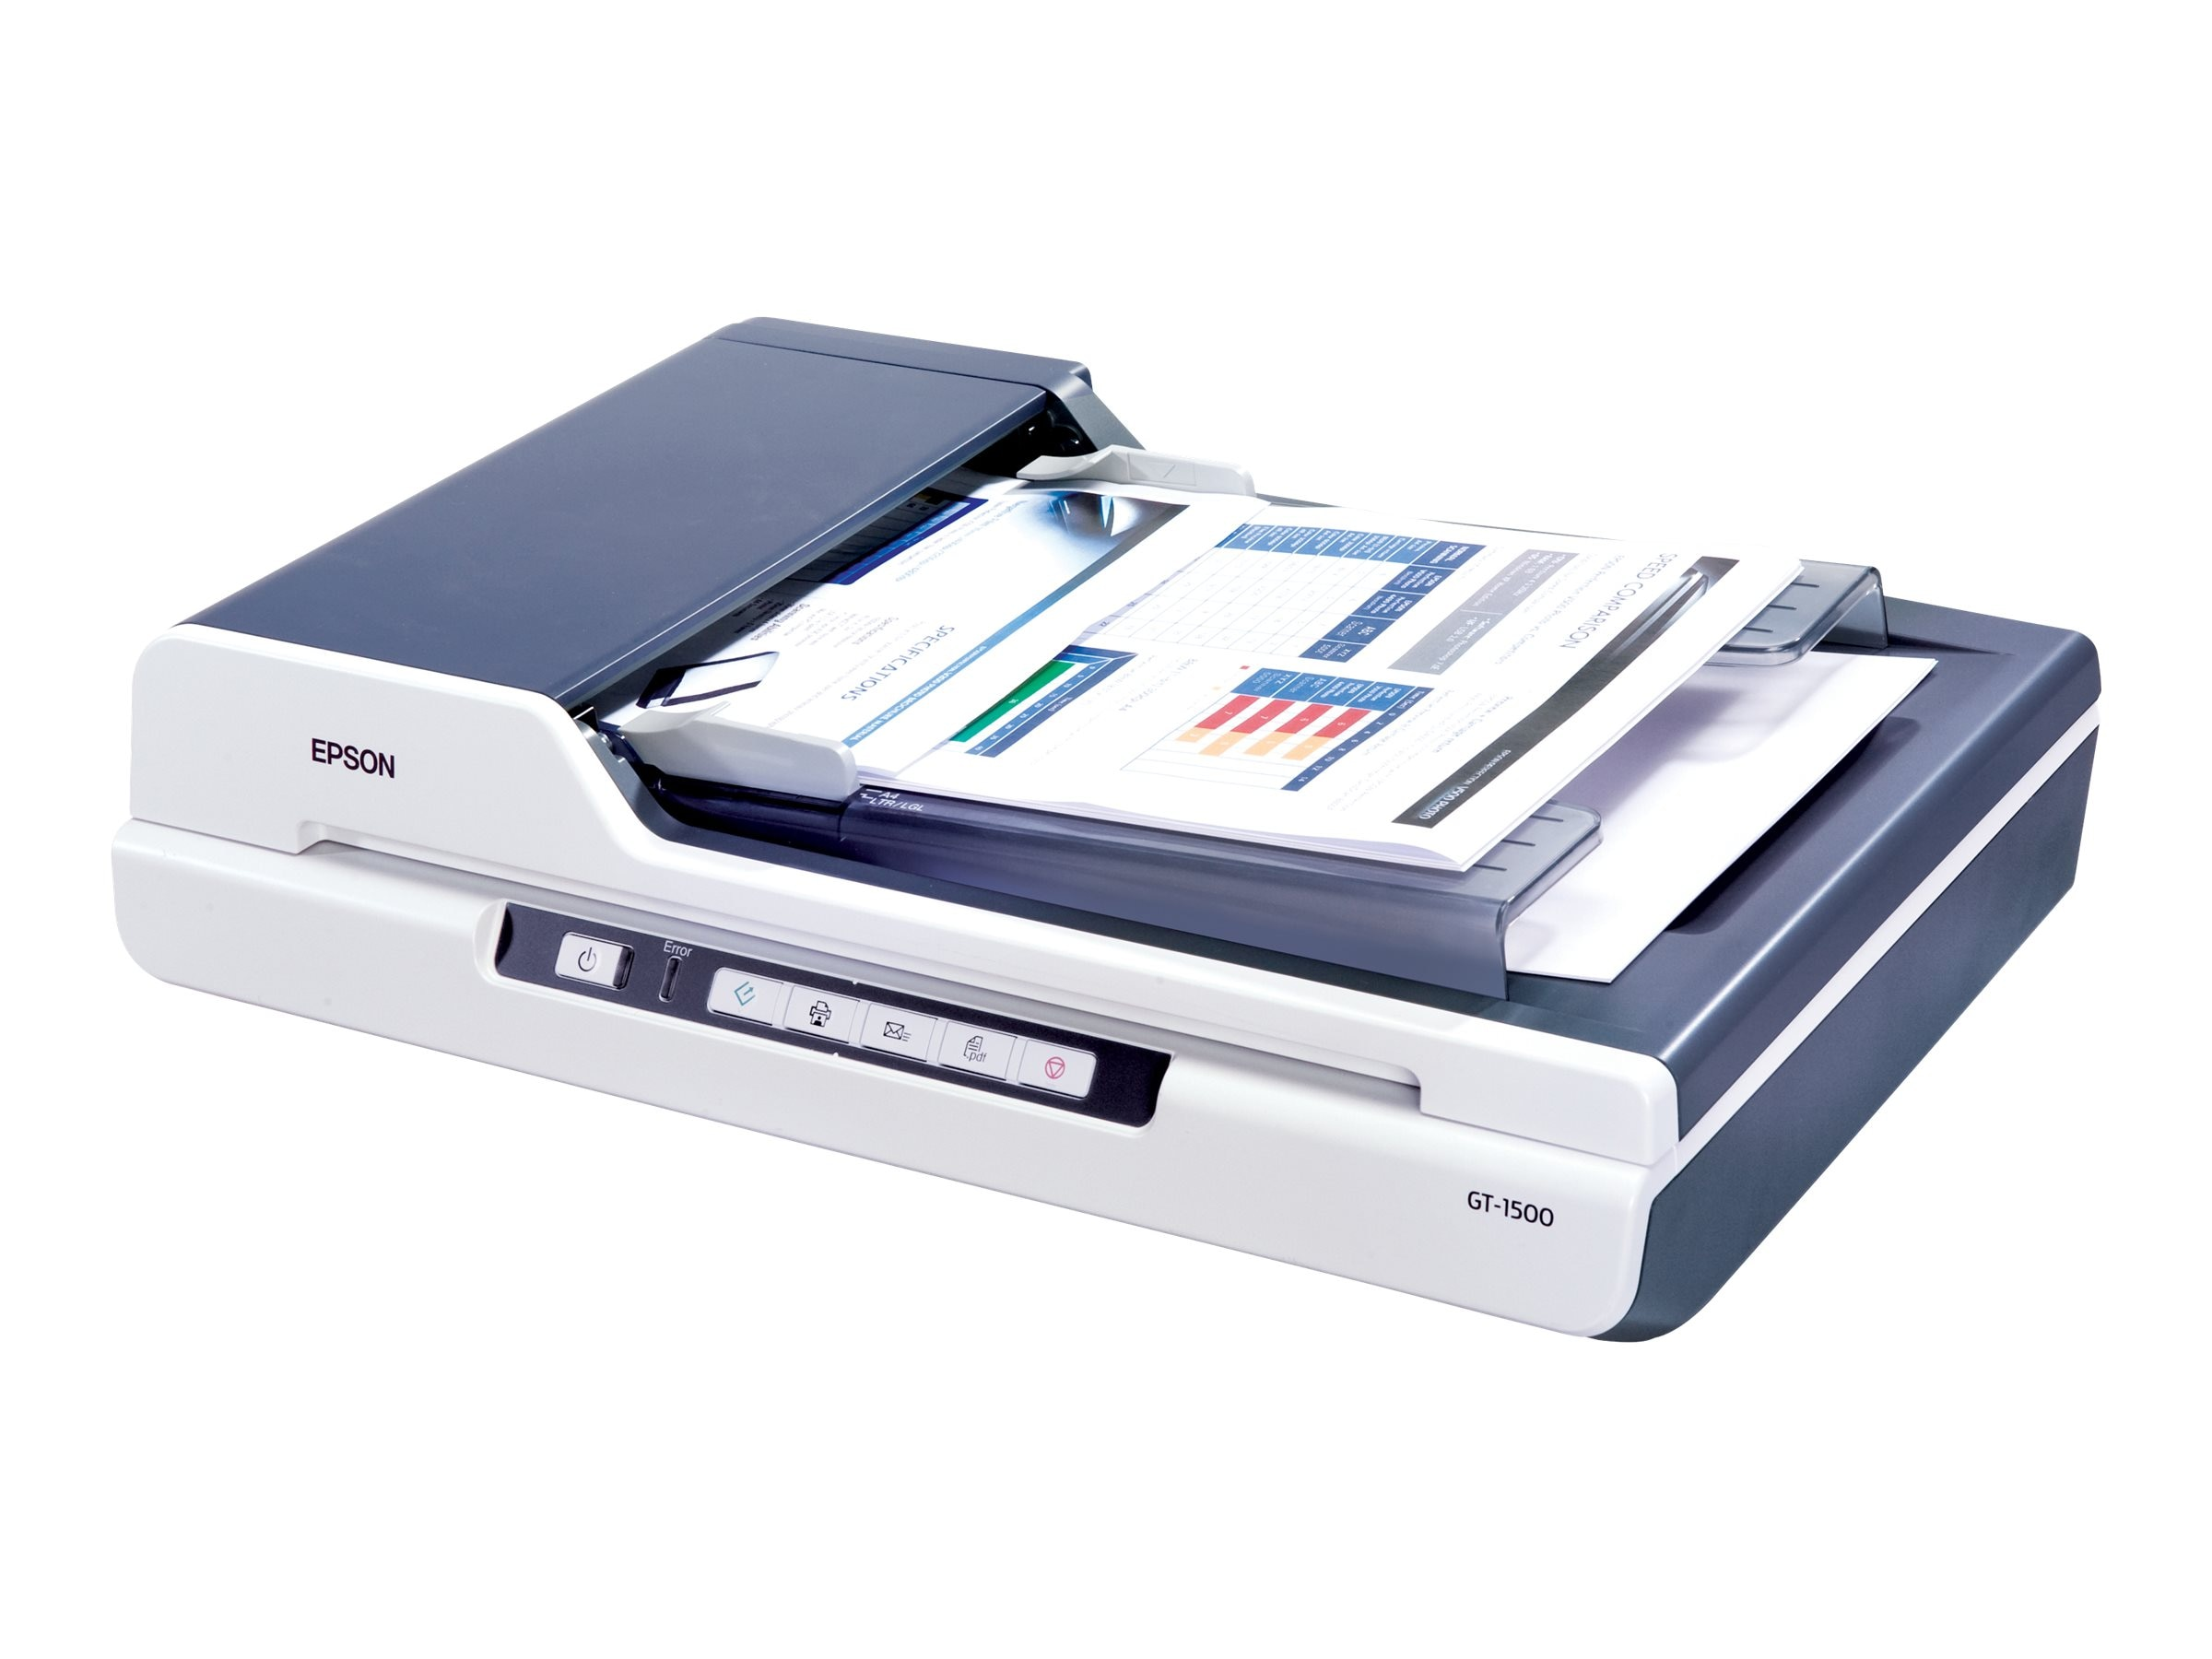 Epson WorkForce GT-1500 Flatbed LED Scanner